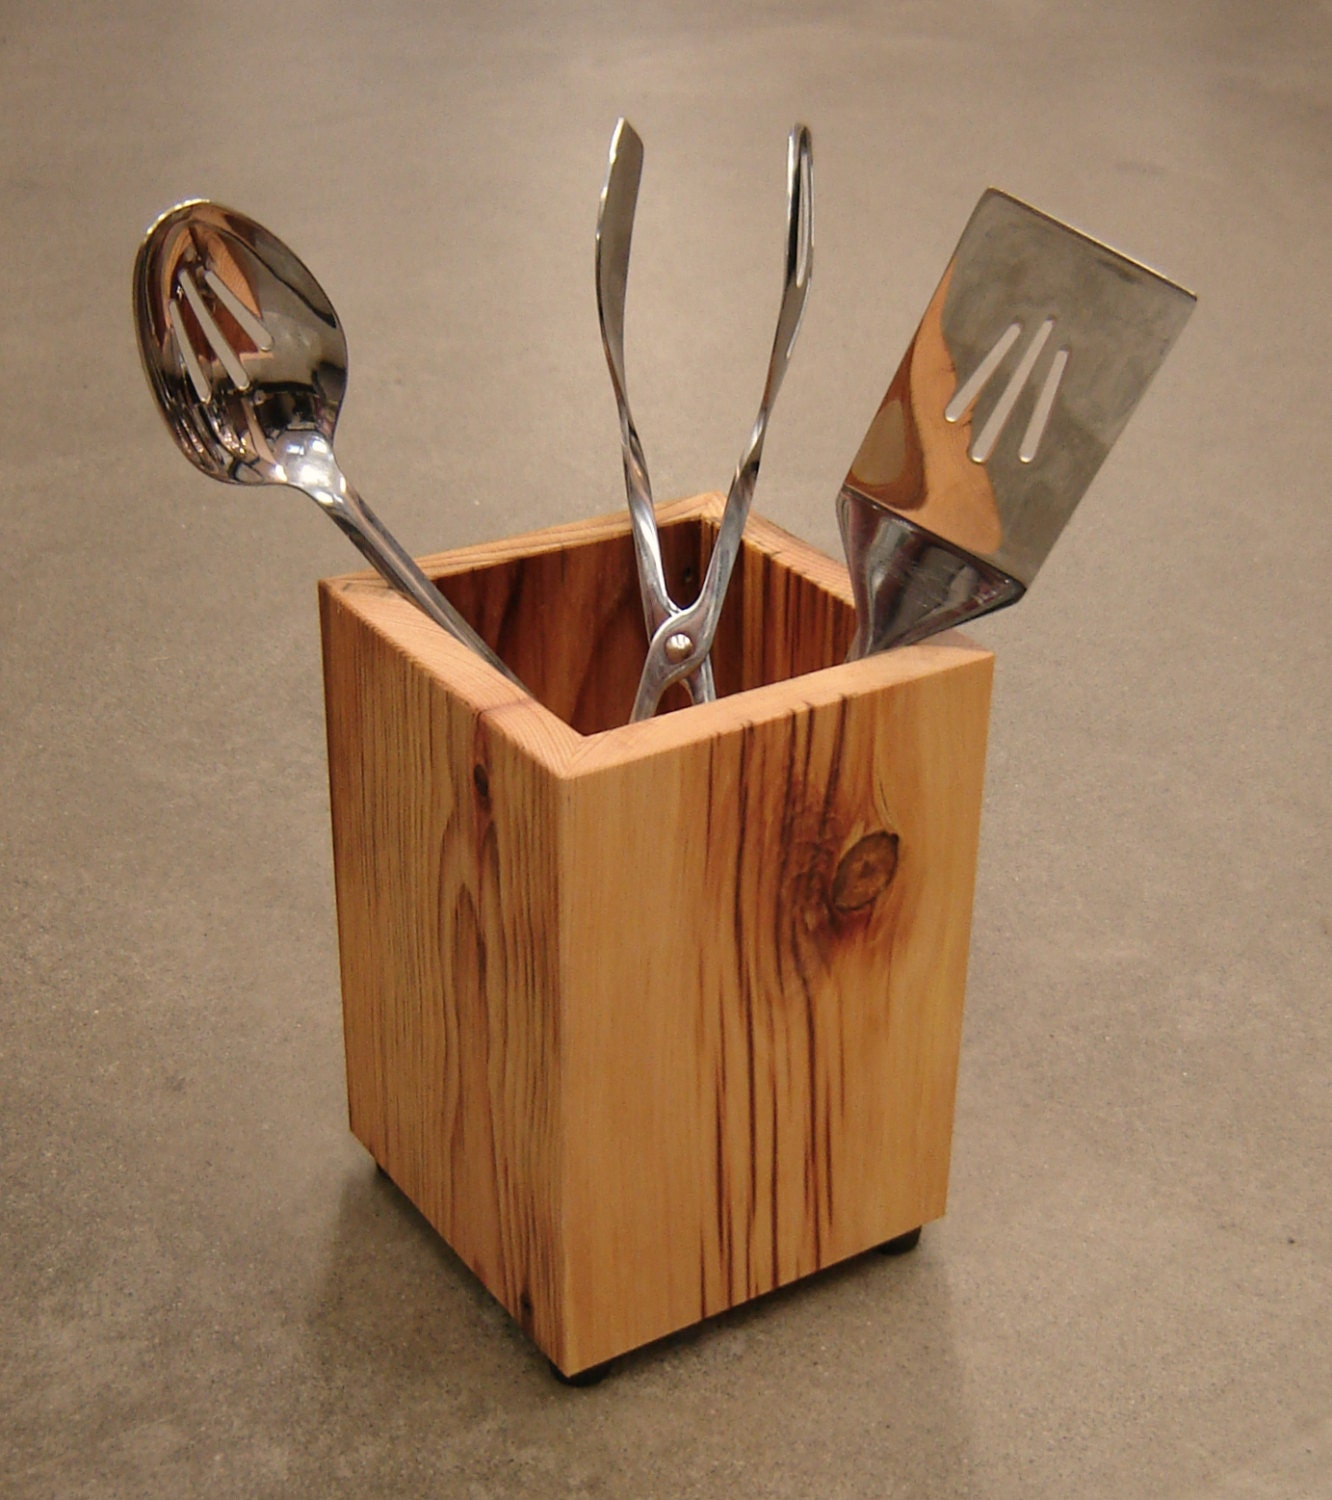 Utensil holder modern kitchen organizer rustic by for Kitchen utensil holder